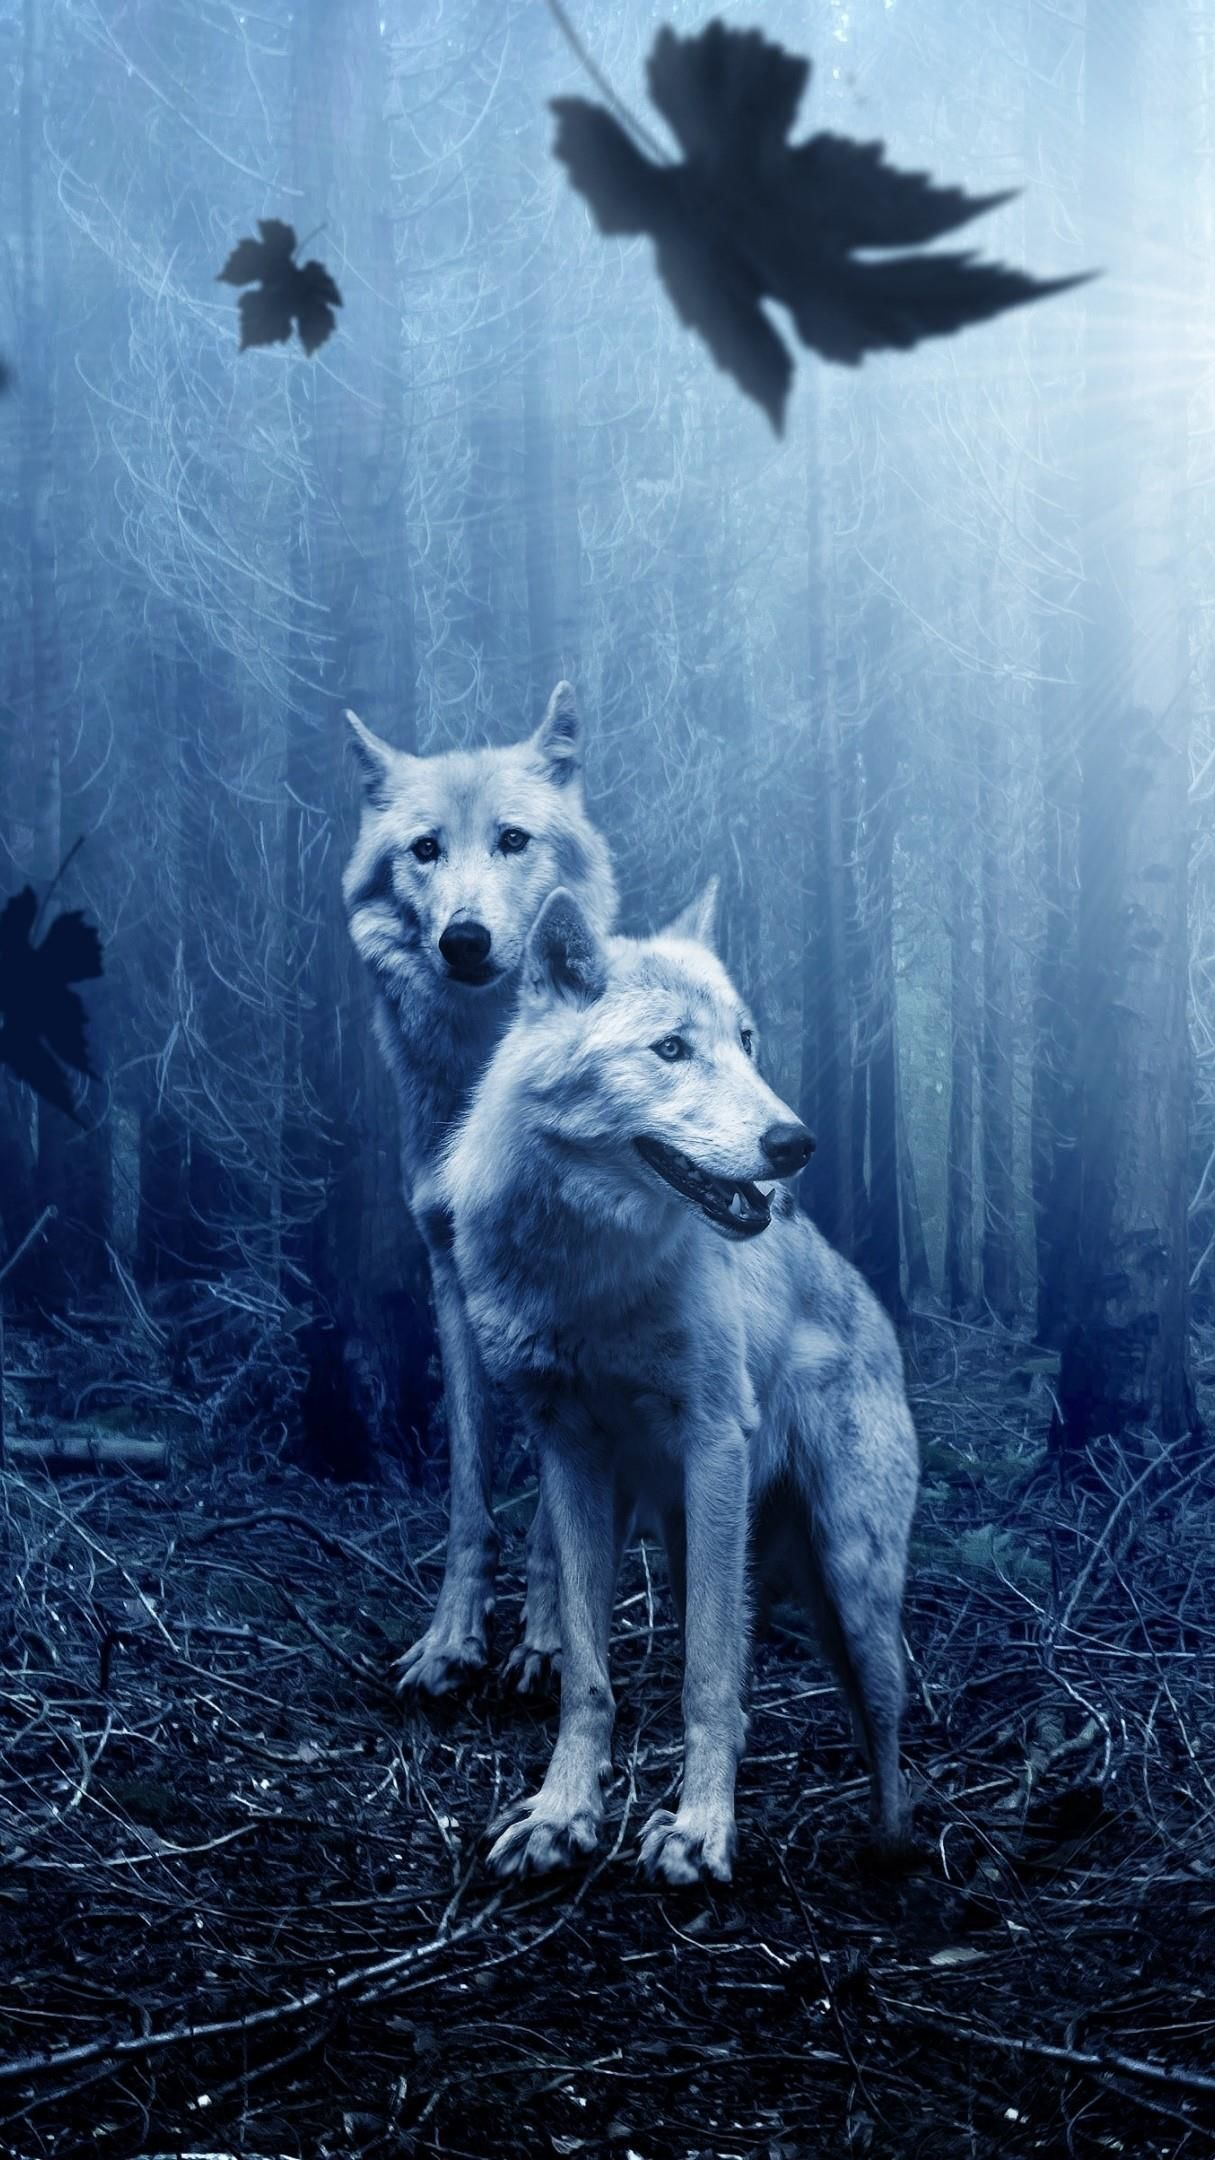 White wolves in the dark forest wallpaper - backiee